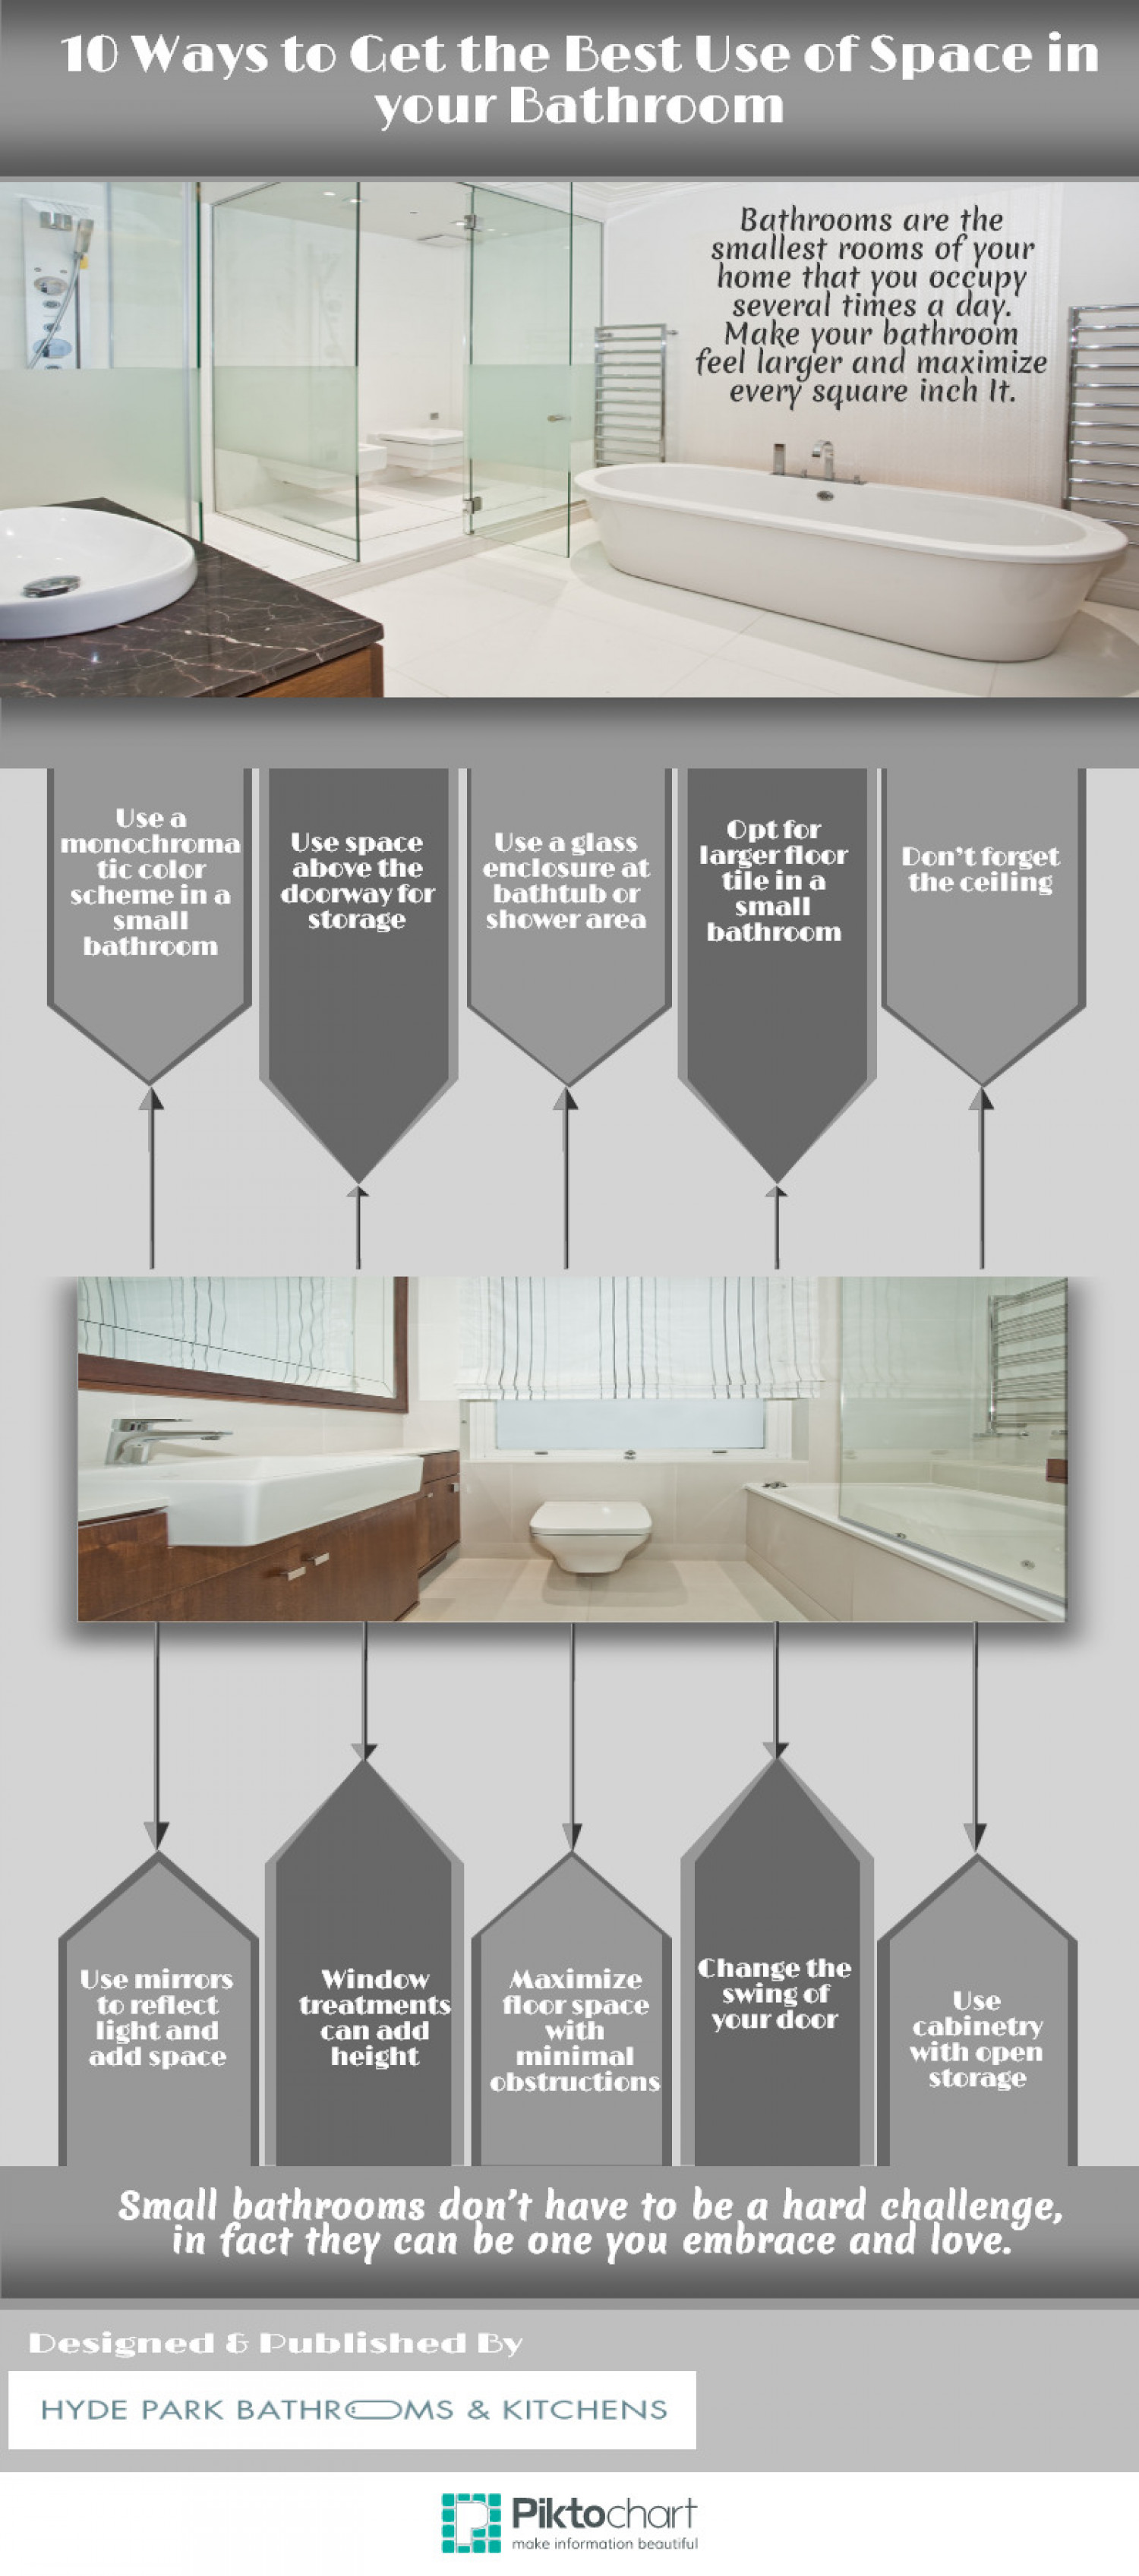 10 Ways to Get the Best Use of Space in your Bathroom Infographic